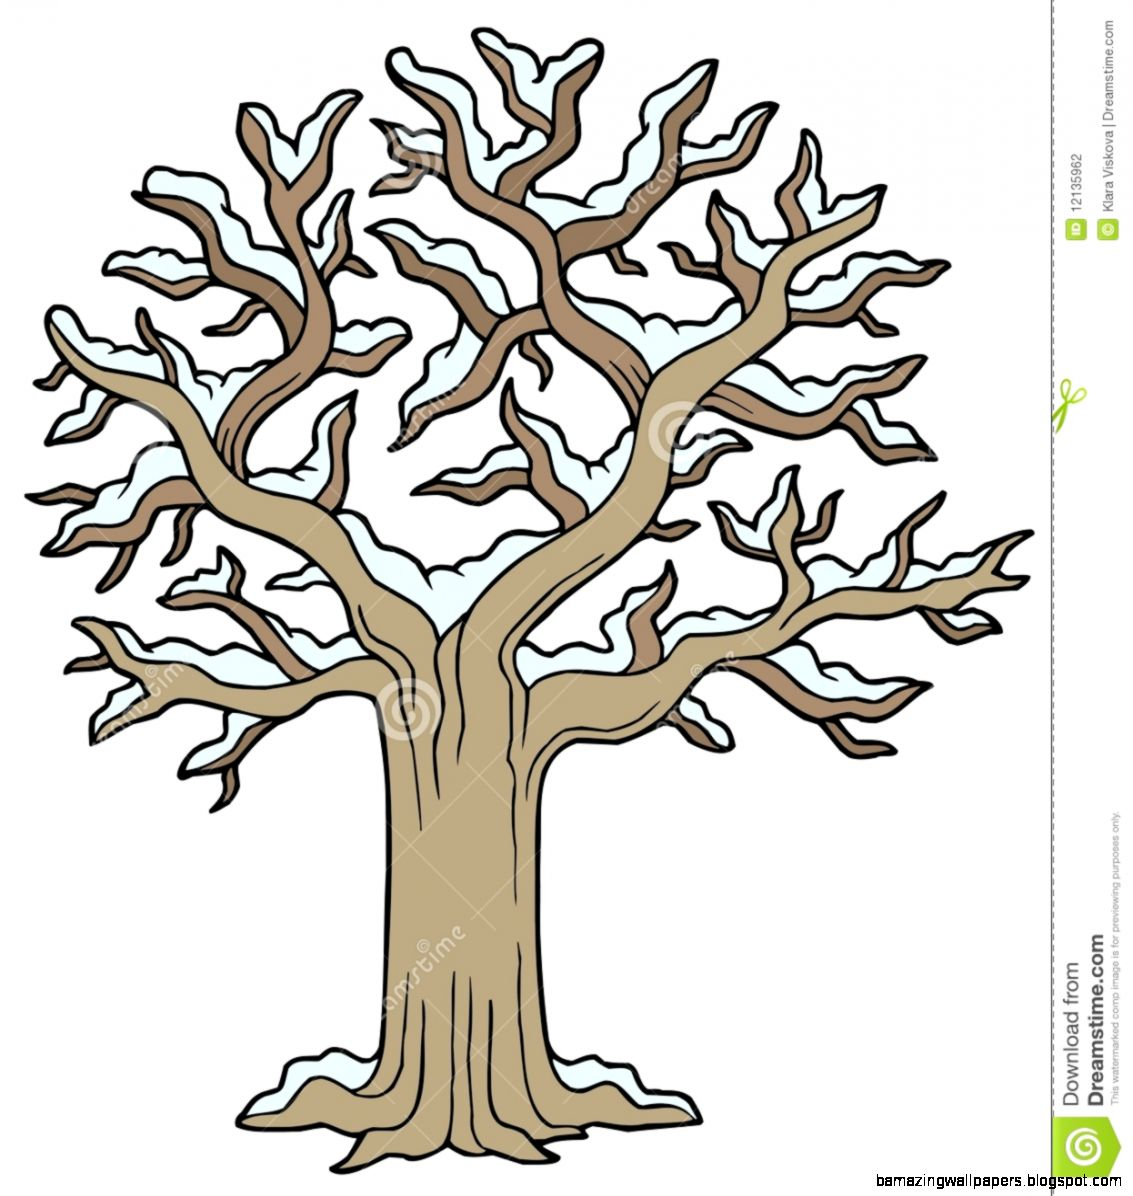 Snowy Tree Clipart   Clipart Kid